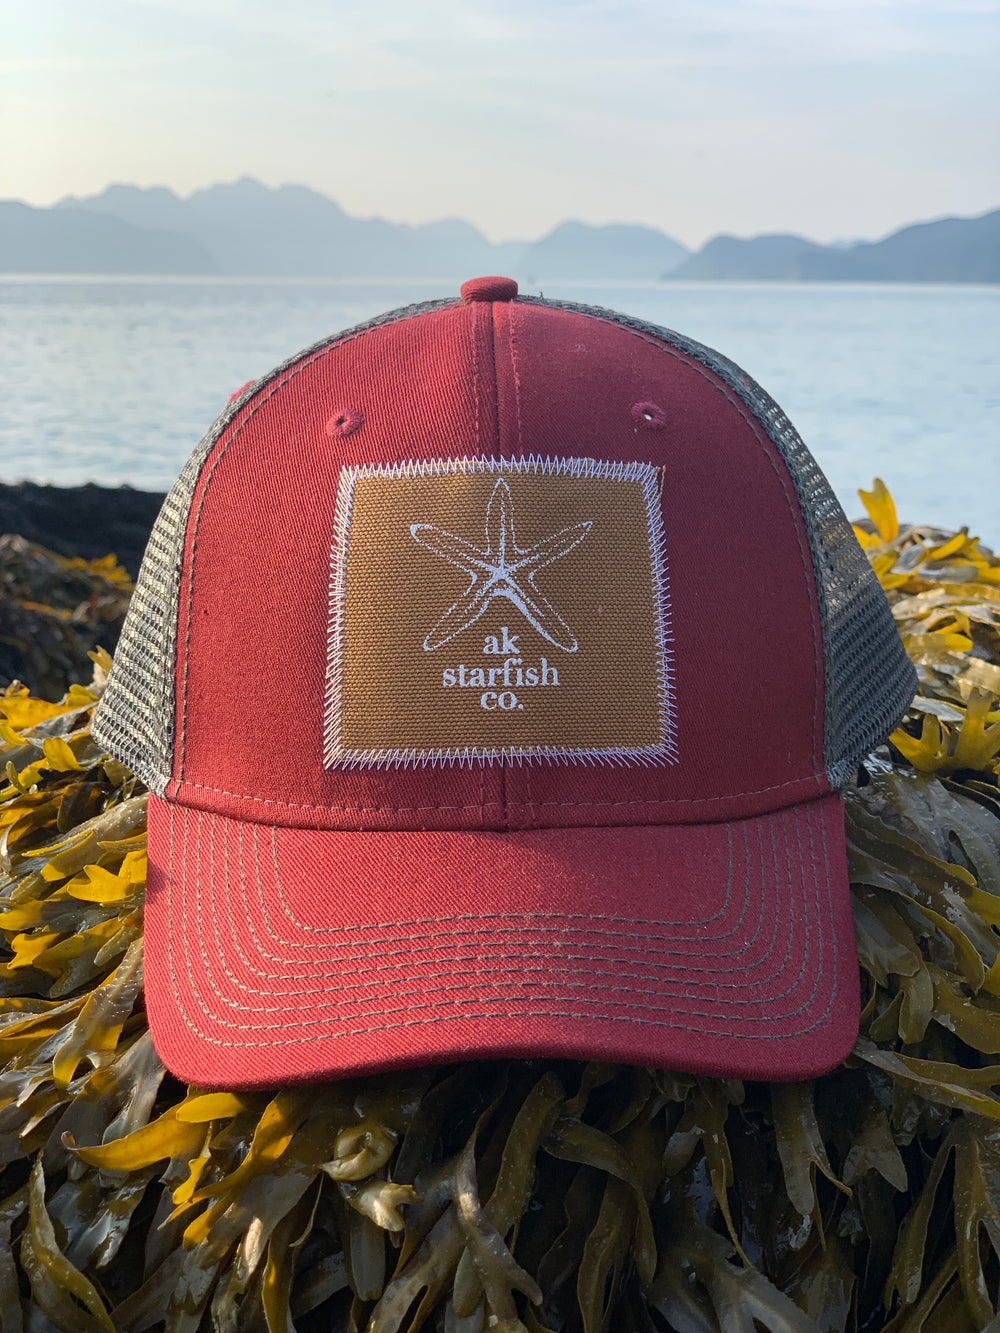 Cranberry with Slate AK Starfish Co. Patch Hat 35.00